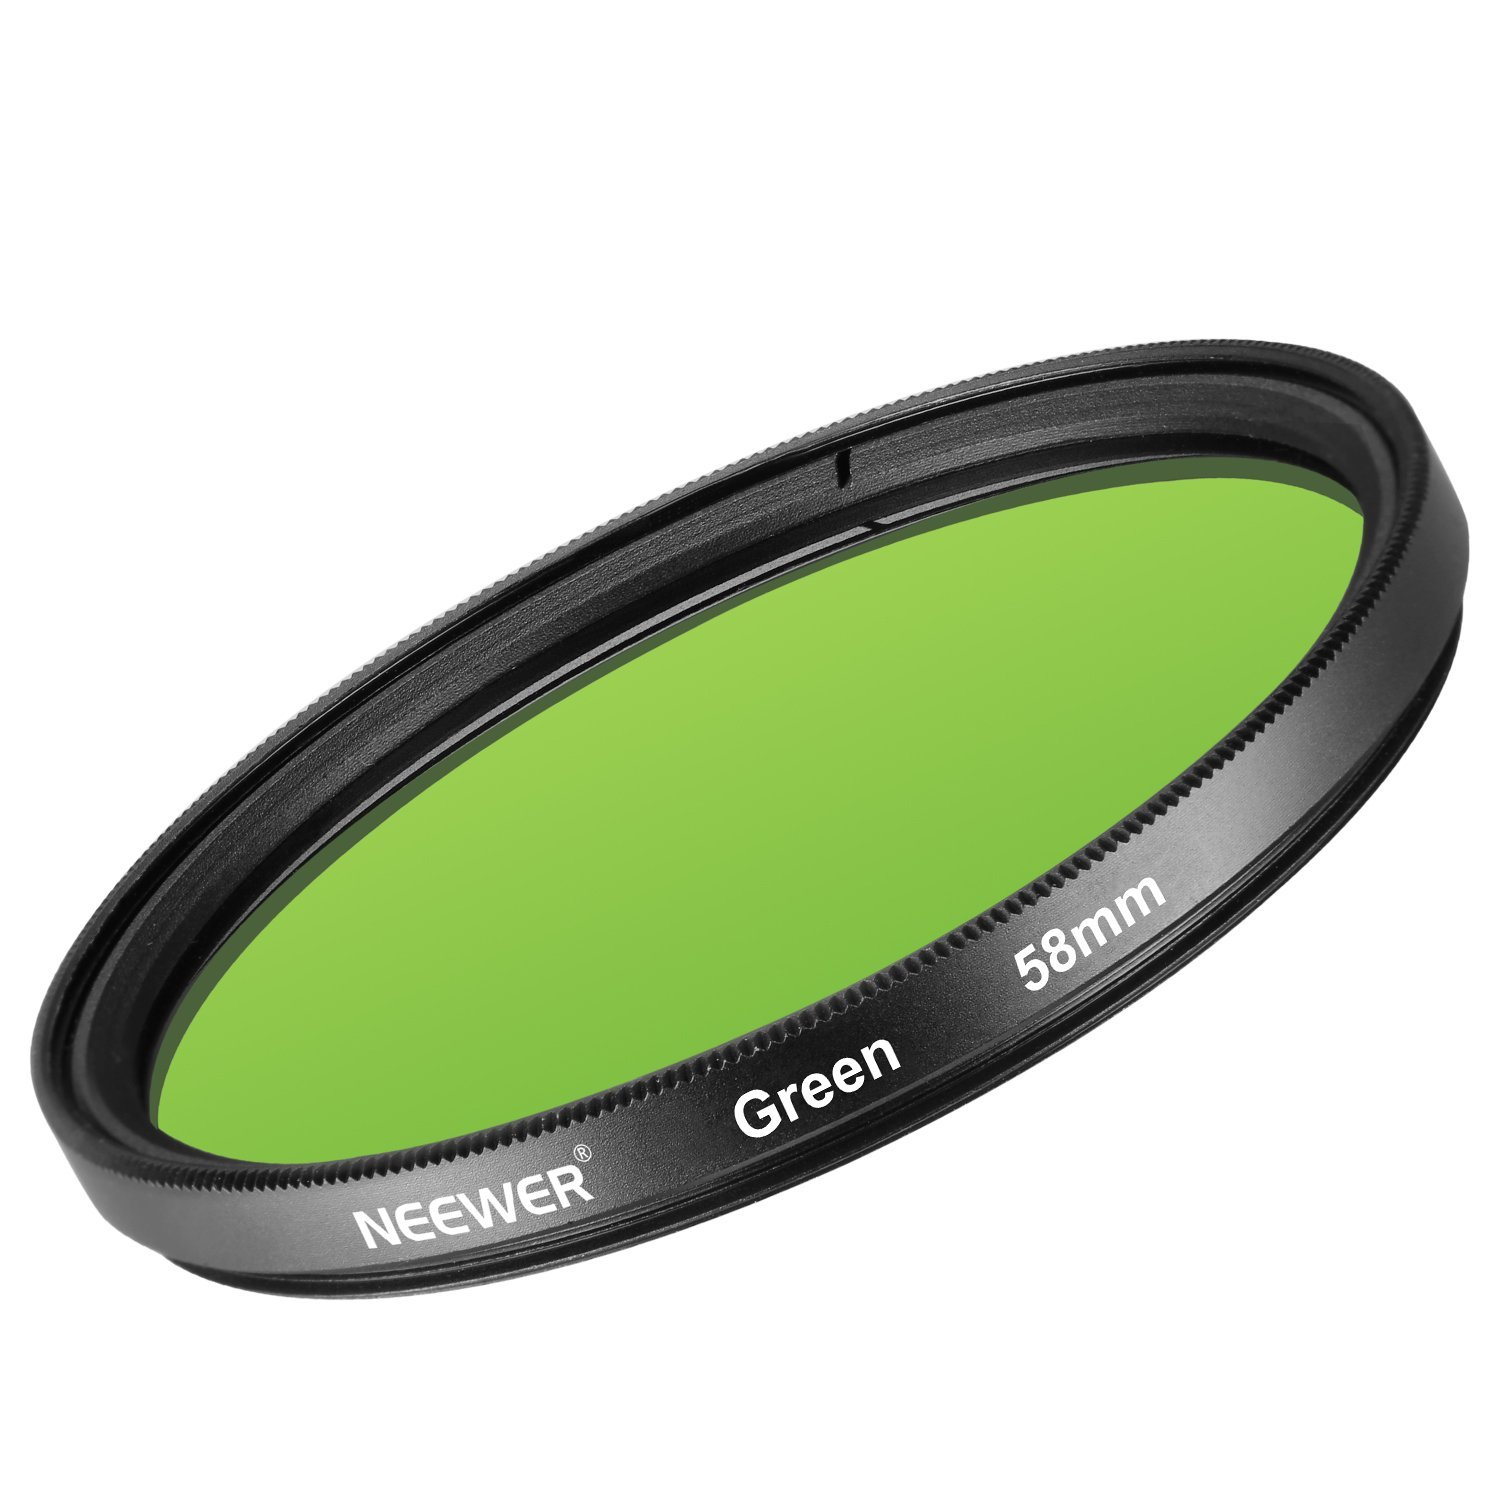 Neewer 58MM Green Lens Filter for Canon EOS Rebel T6i T6 T5i T5 T4i T3i SL1 DSLR Camera, Made of HD Optical Glass and Aluminum Alloy Frame